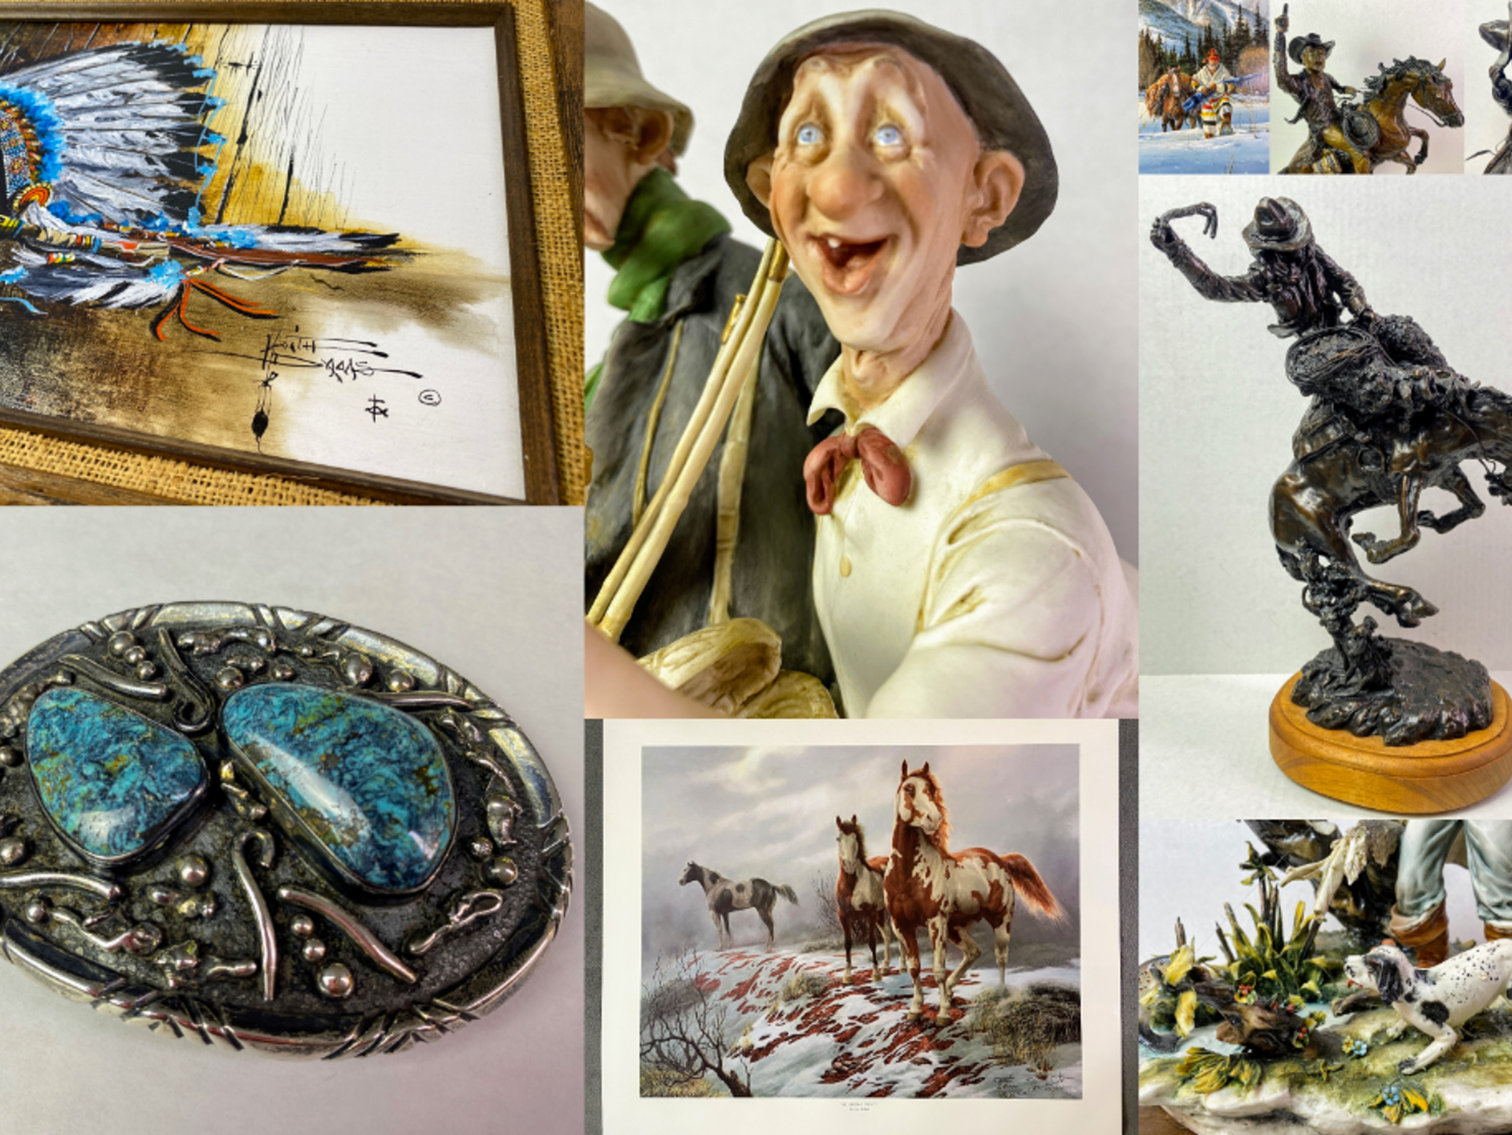 Personal Property Liquidation Sale: Artwork,  Collectibles and Antiques